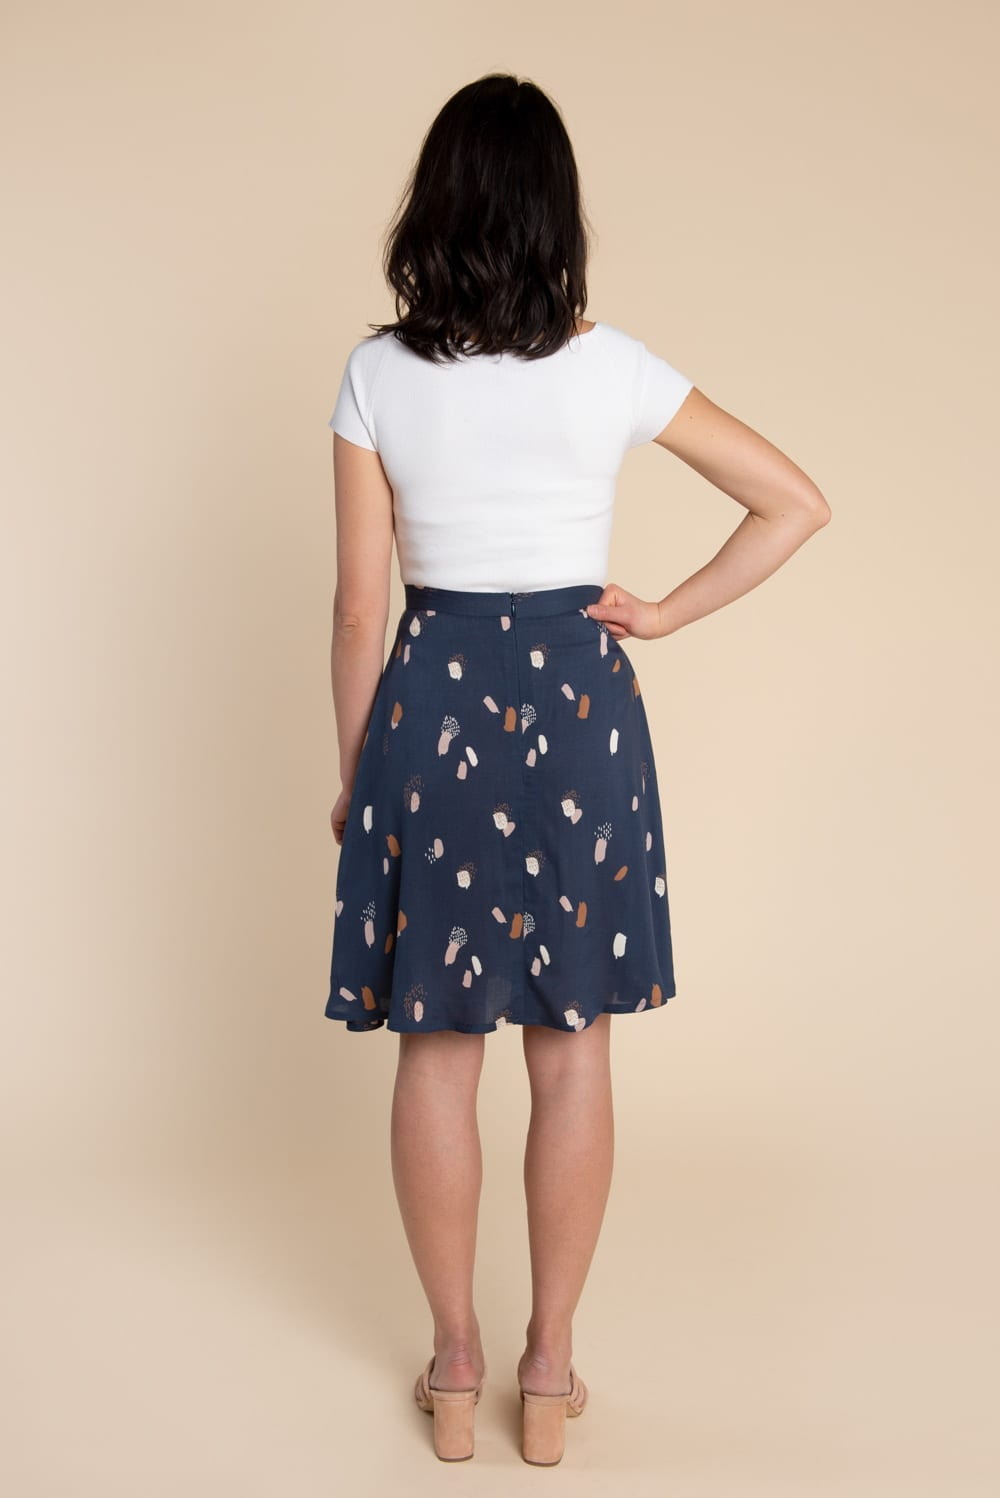 Fiore Skirt Pattern | Closet Case Patterns